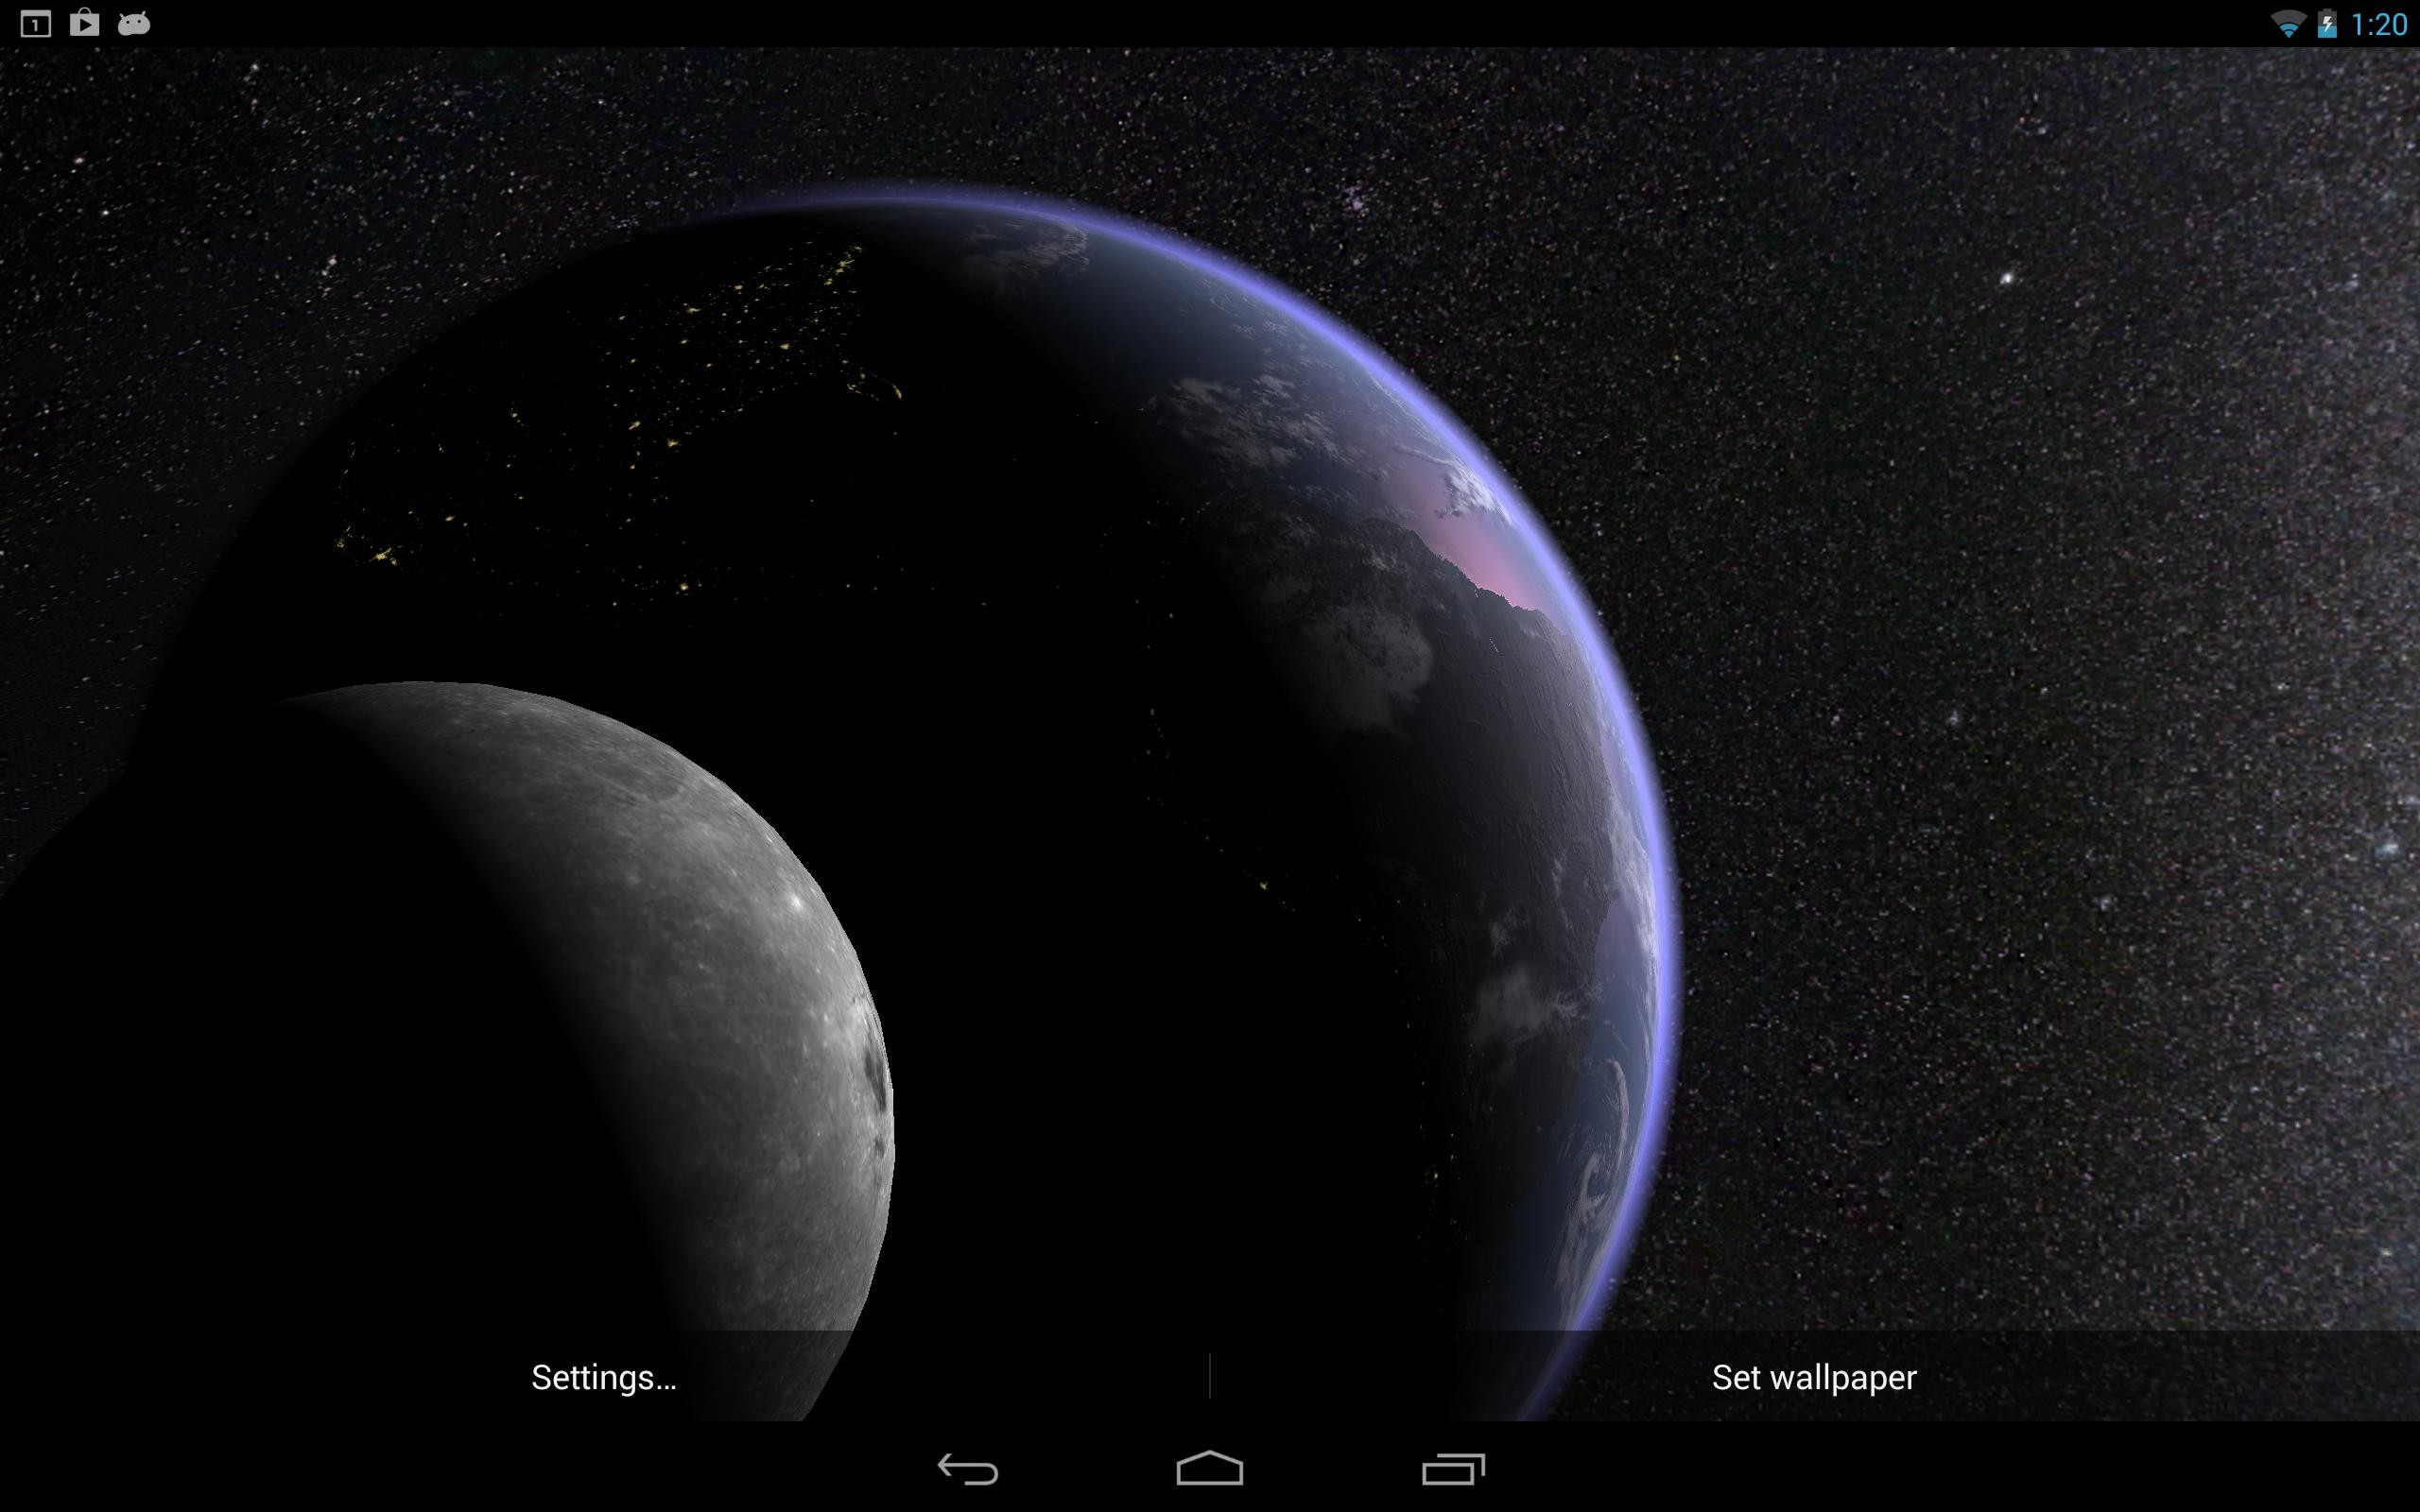 Wallpaper Dinding 3d Alam Paling Bagus Untuk Earth & Moon In Hd Gyro 3d Pro Amazon Appstore for android